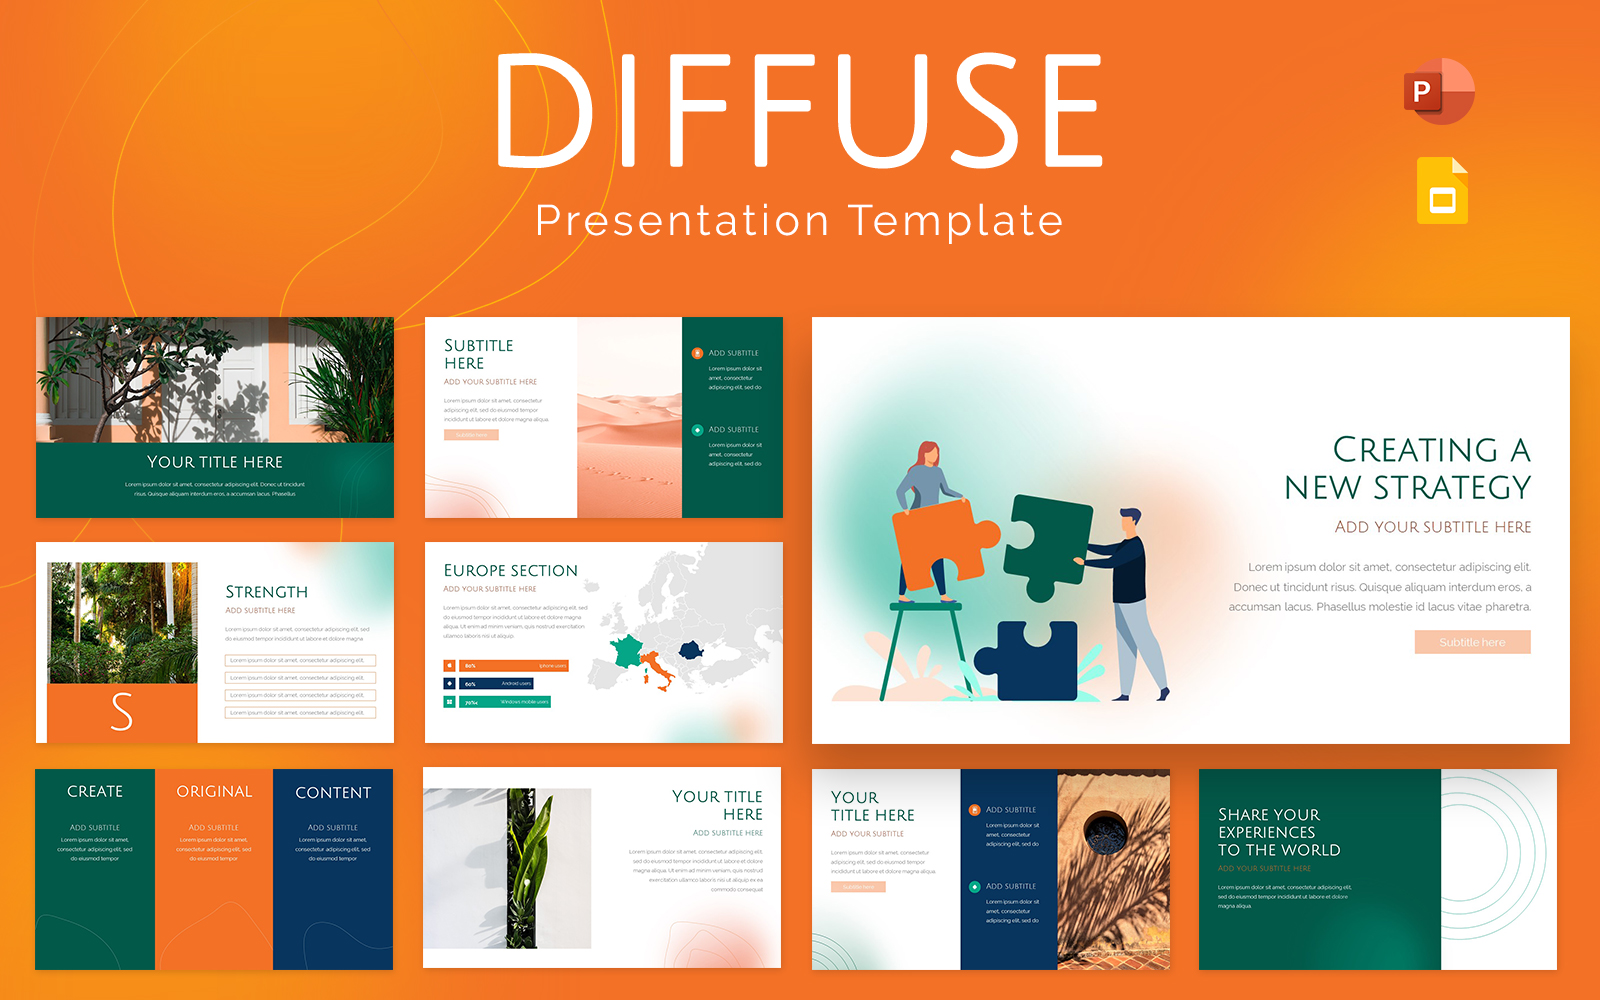 Diffuse Powerpoint Presentation Template